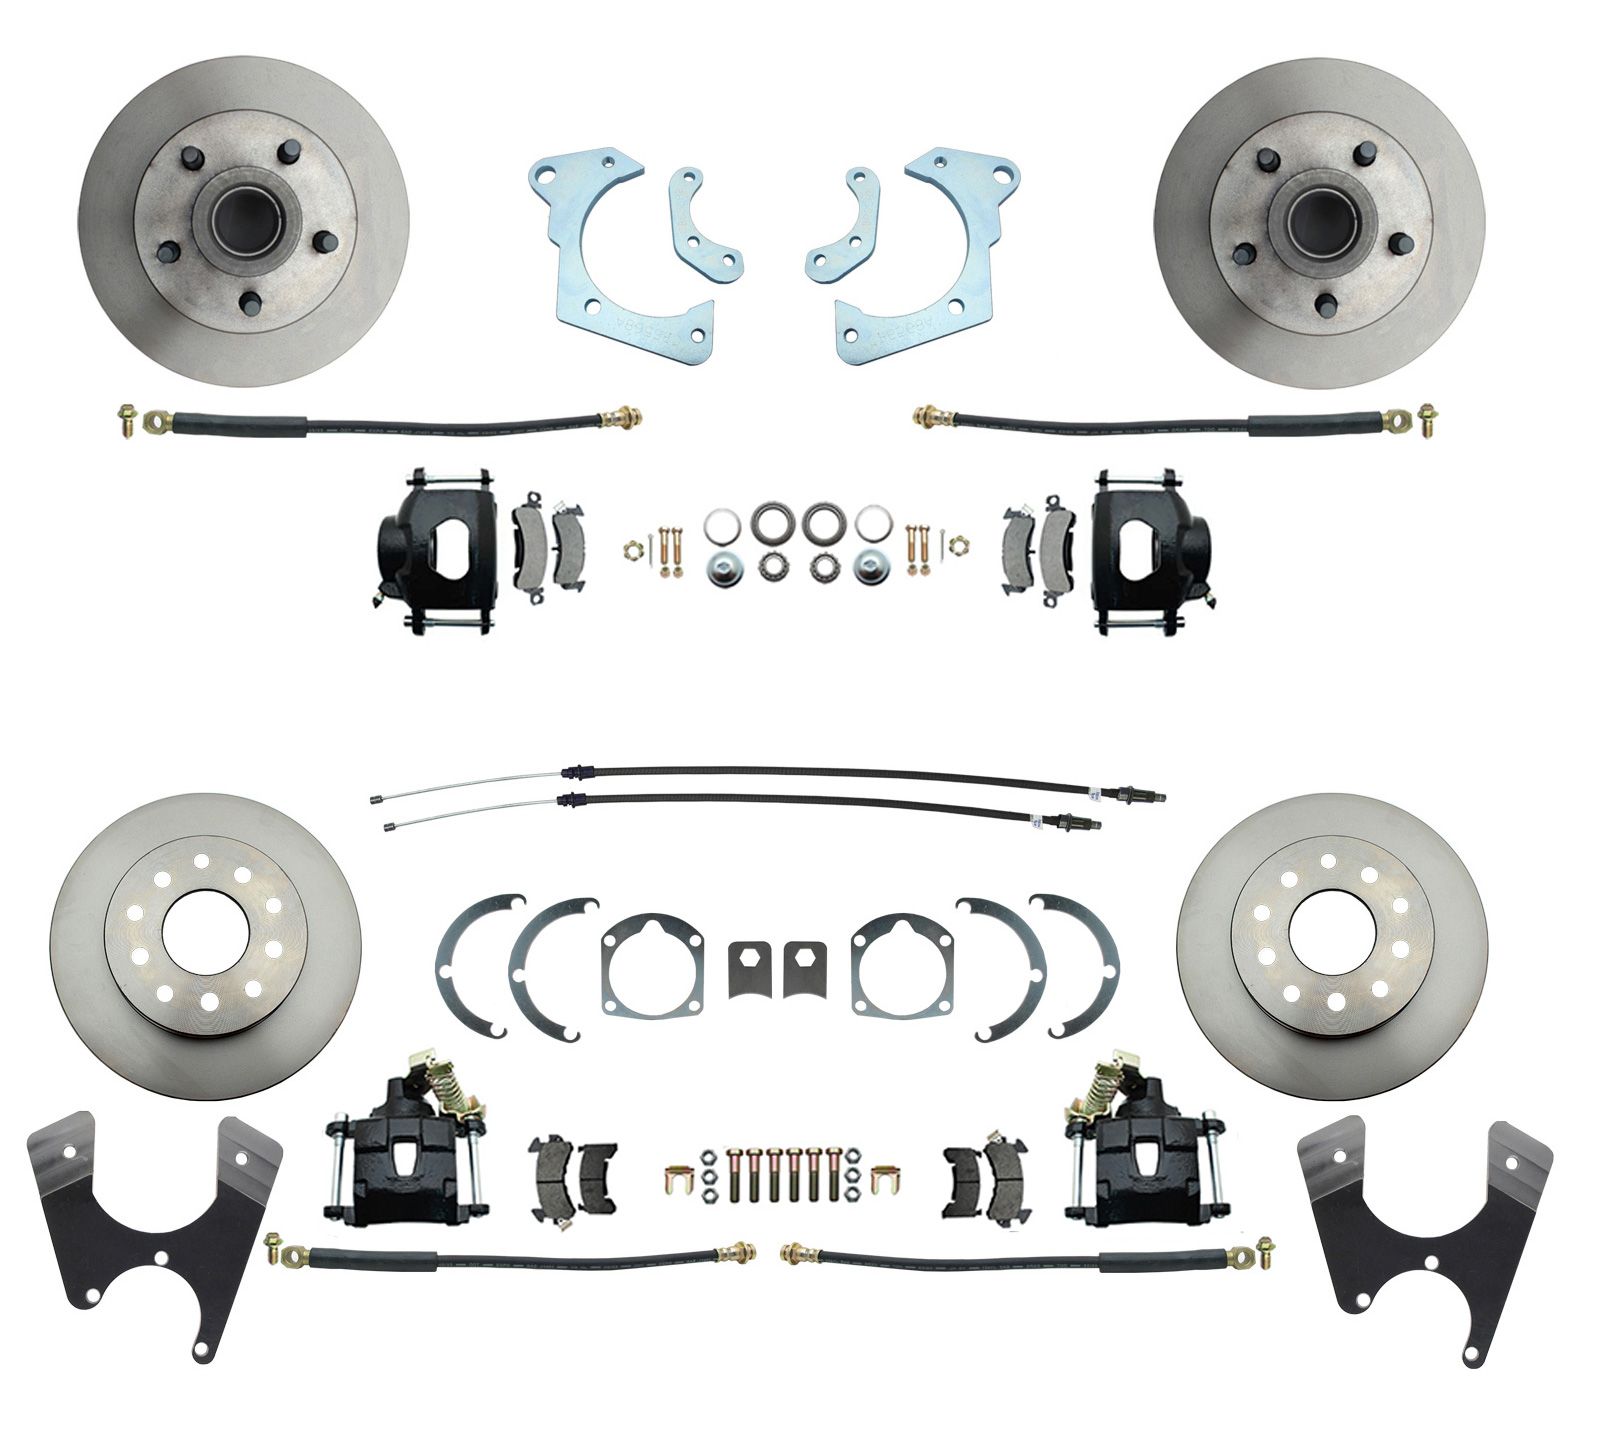 1959-1964 Full Size Chevy Complete Front & Rear Disc Brake Conversion Kit W/ Powder Coated Black Calipers